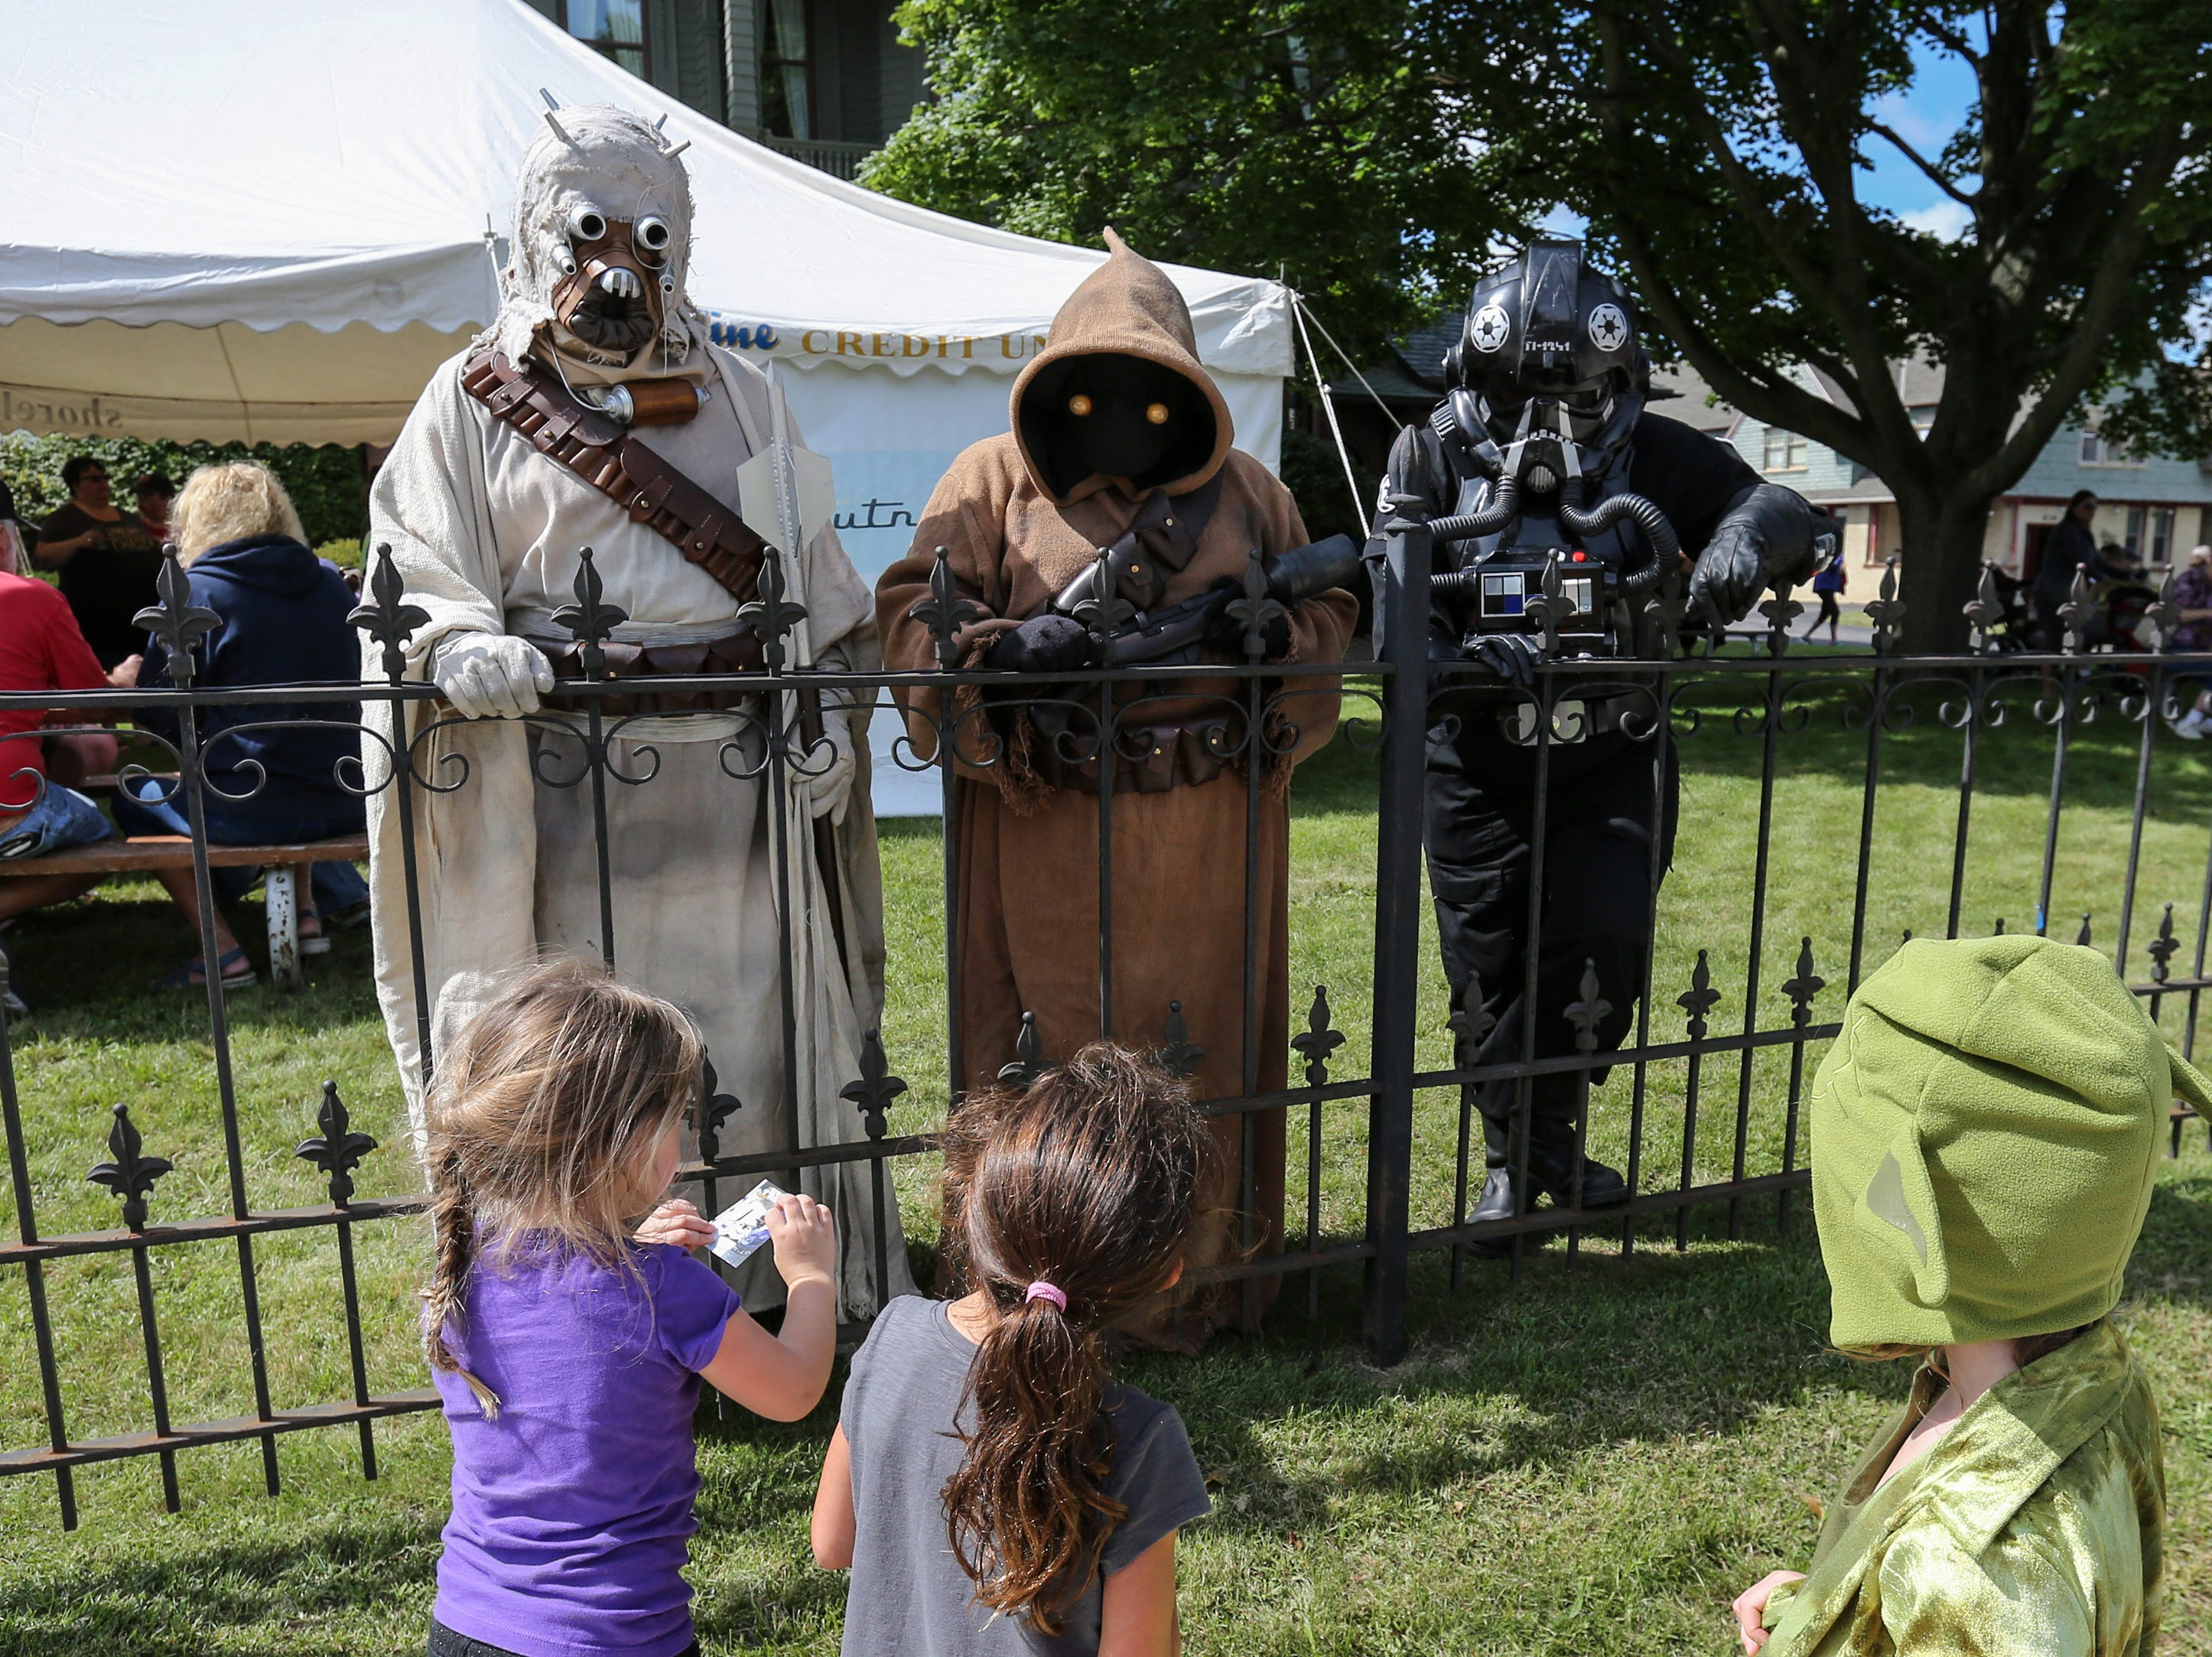 Children approach members of the 501st Legion during Sputnikfest at the Rahr-West Museum Saturday, September 8, 2018, in Manitowoc, Wis. Josh Clark/USA TODAY NETWORK-Wisconsin